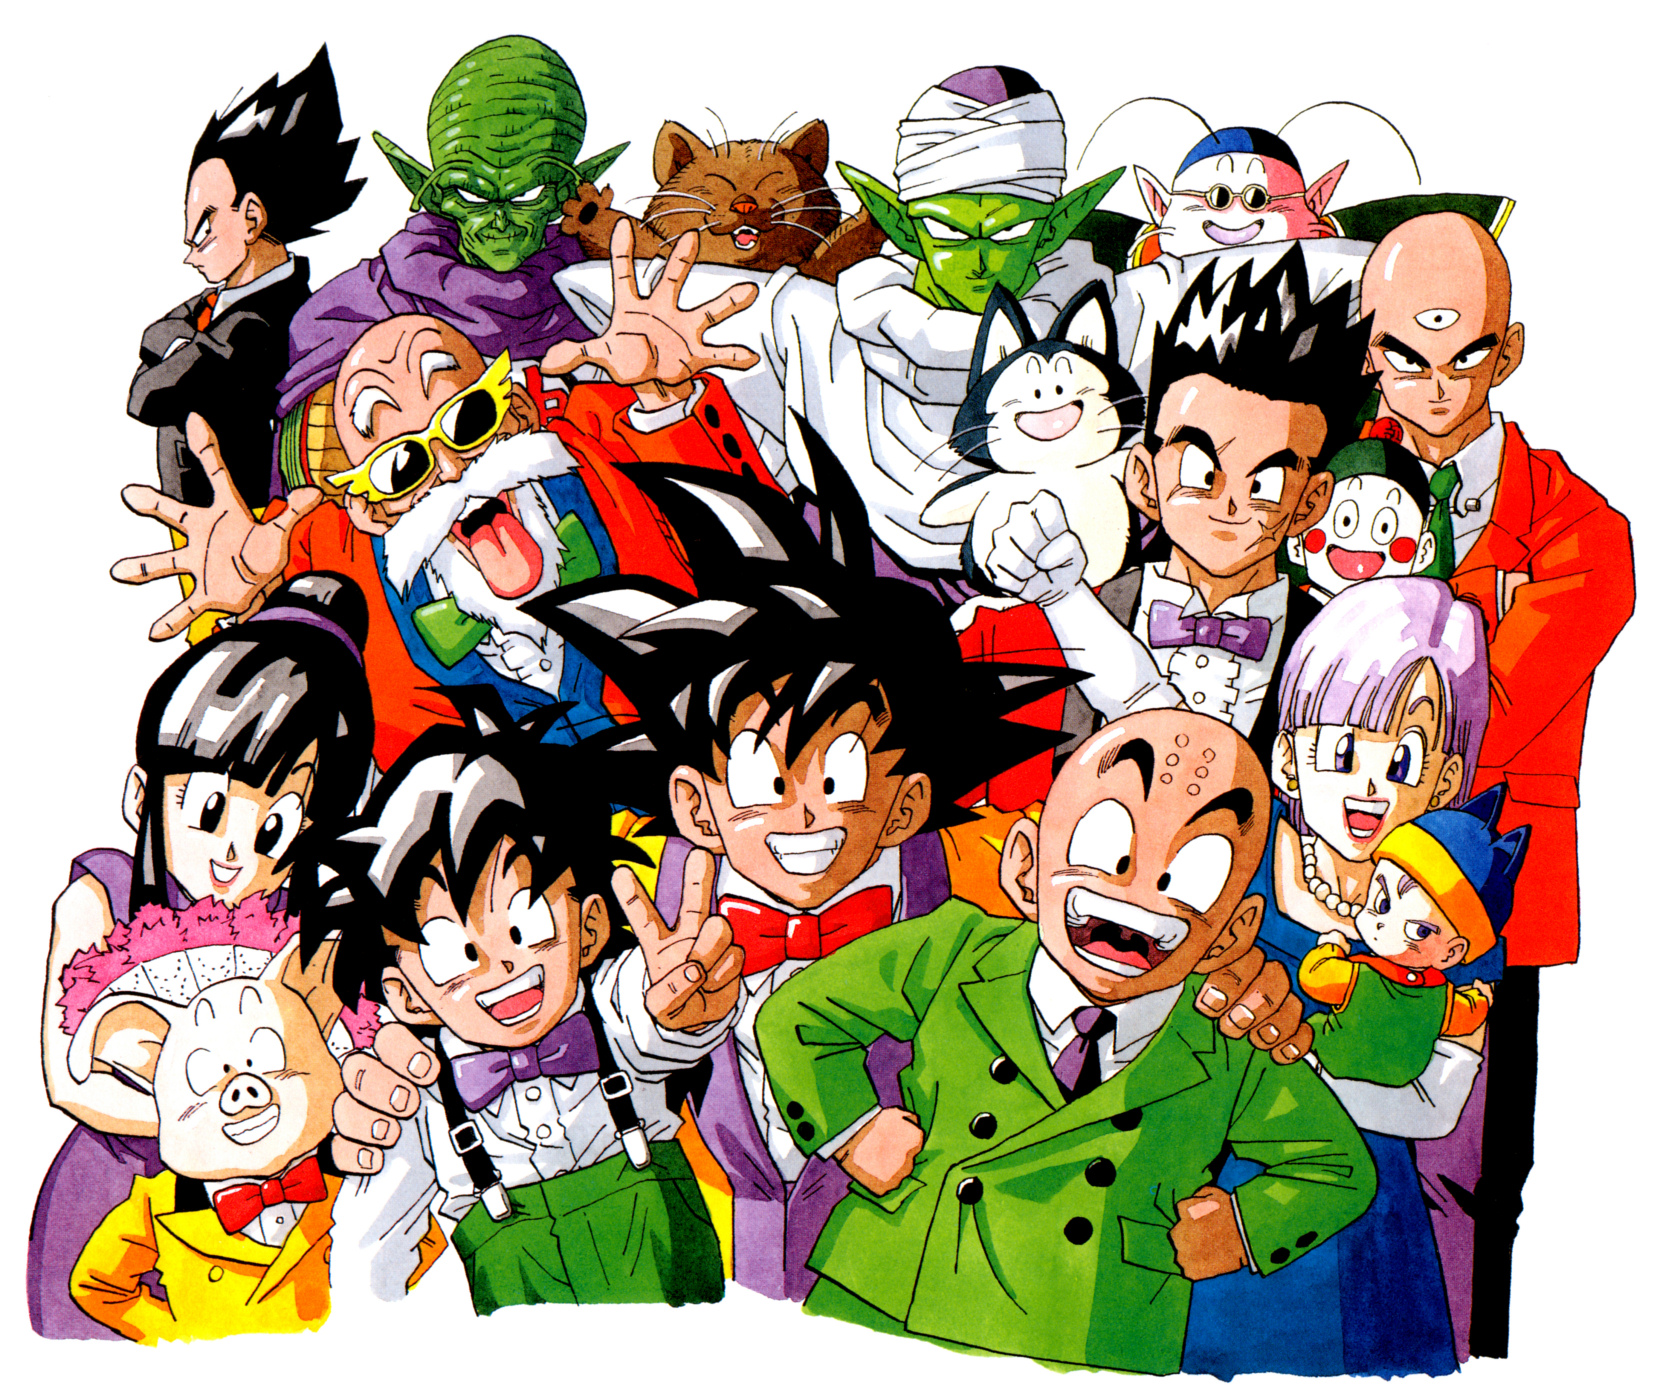 Kami dragon ball zerochan anime image board - Images dragon ball z ...